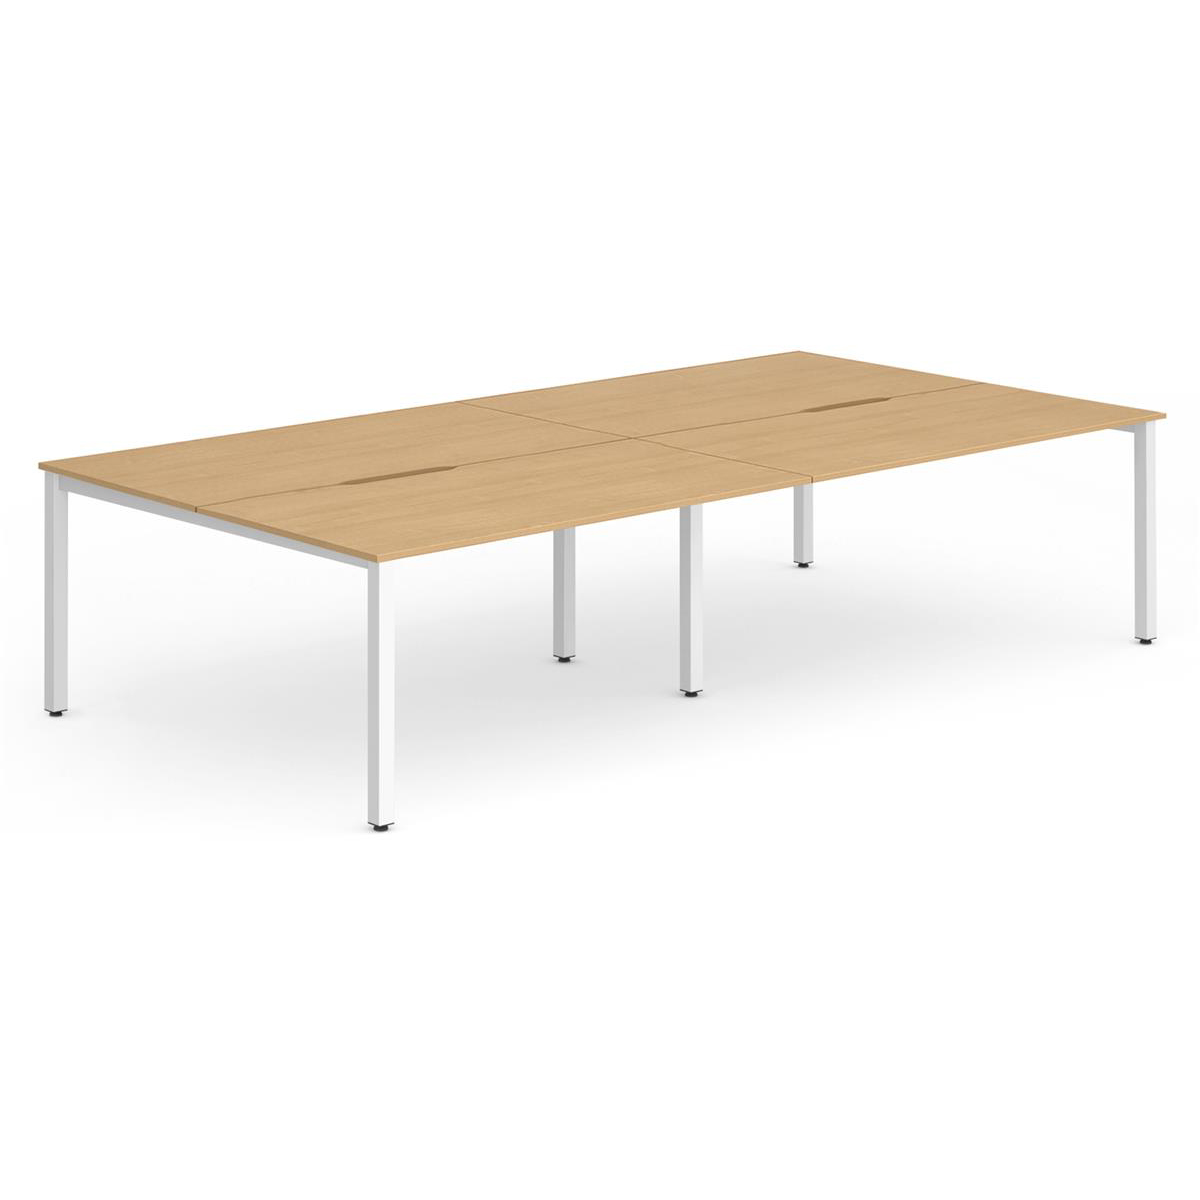 Trexus Bench Desk 4 Person Back to Back Configuration White Leg 3200x1600mm Beech Ref BE232